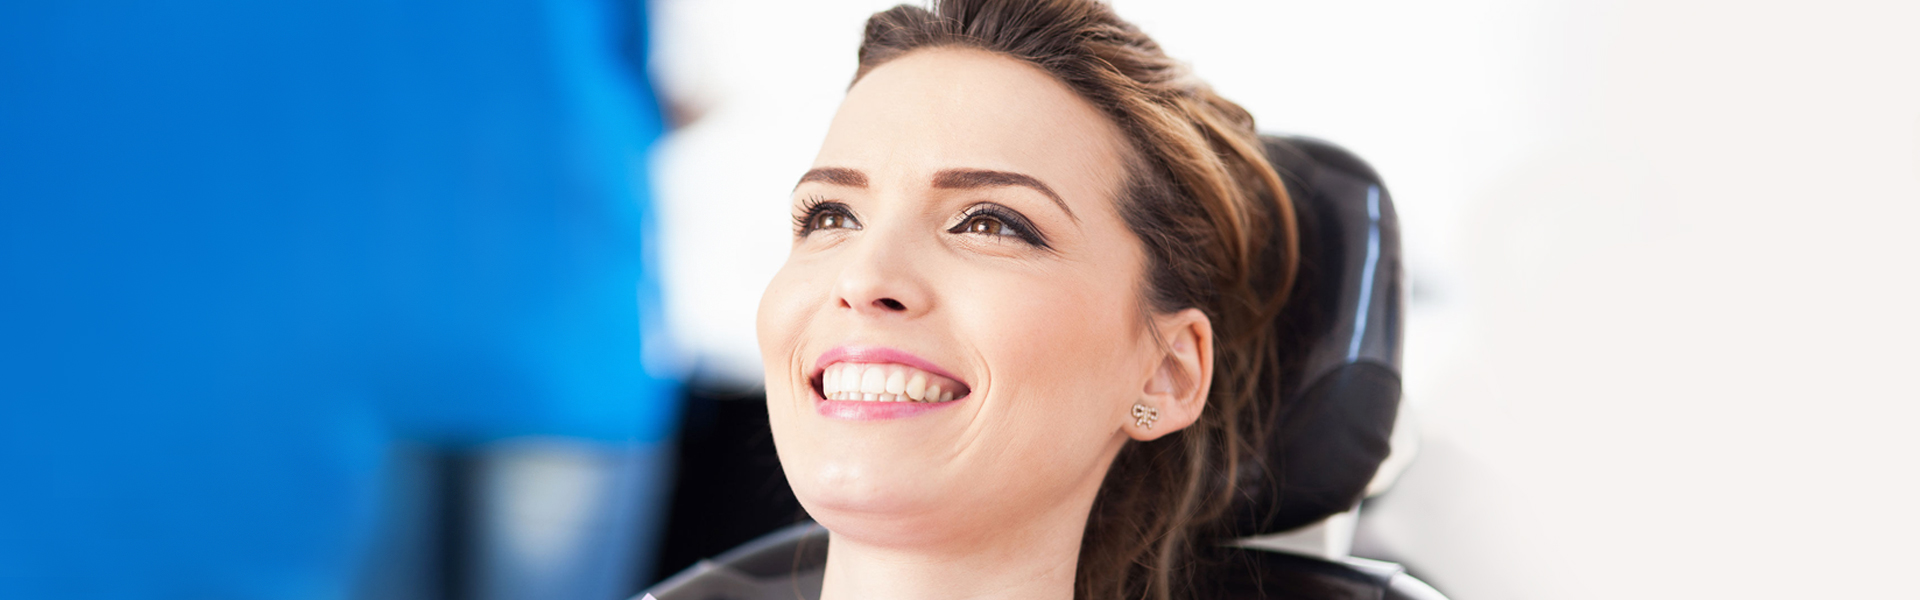 Quick Facts About Teeth Whitening